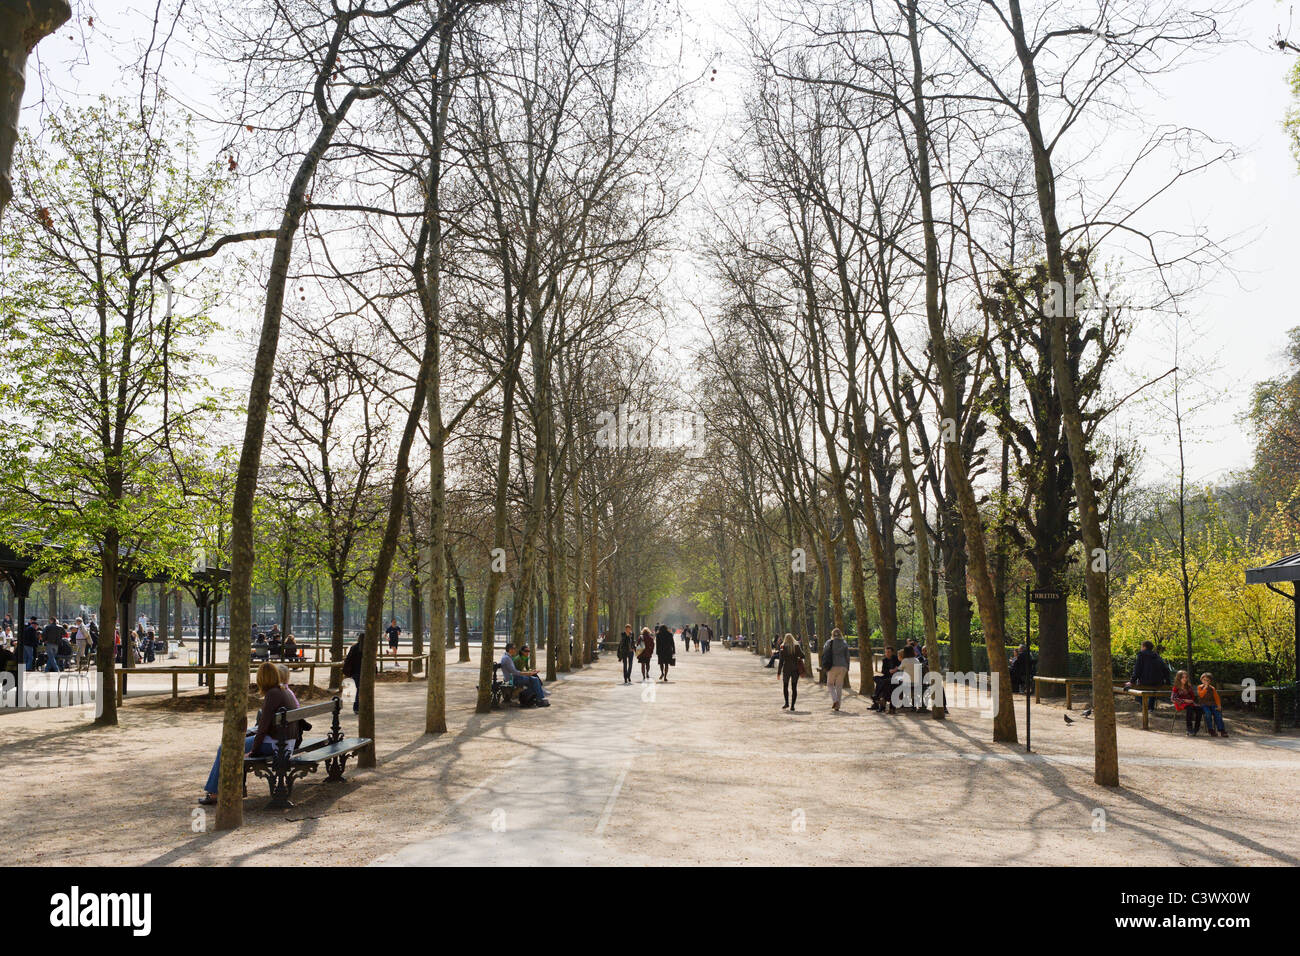 Jardin du Luxembourg in the early spring, 6th Arrondissement, Paris, France - Stock Image